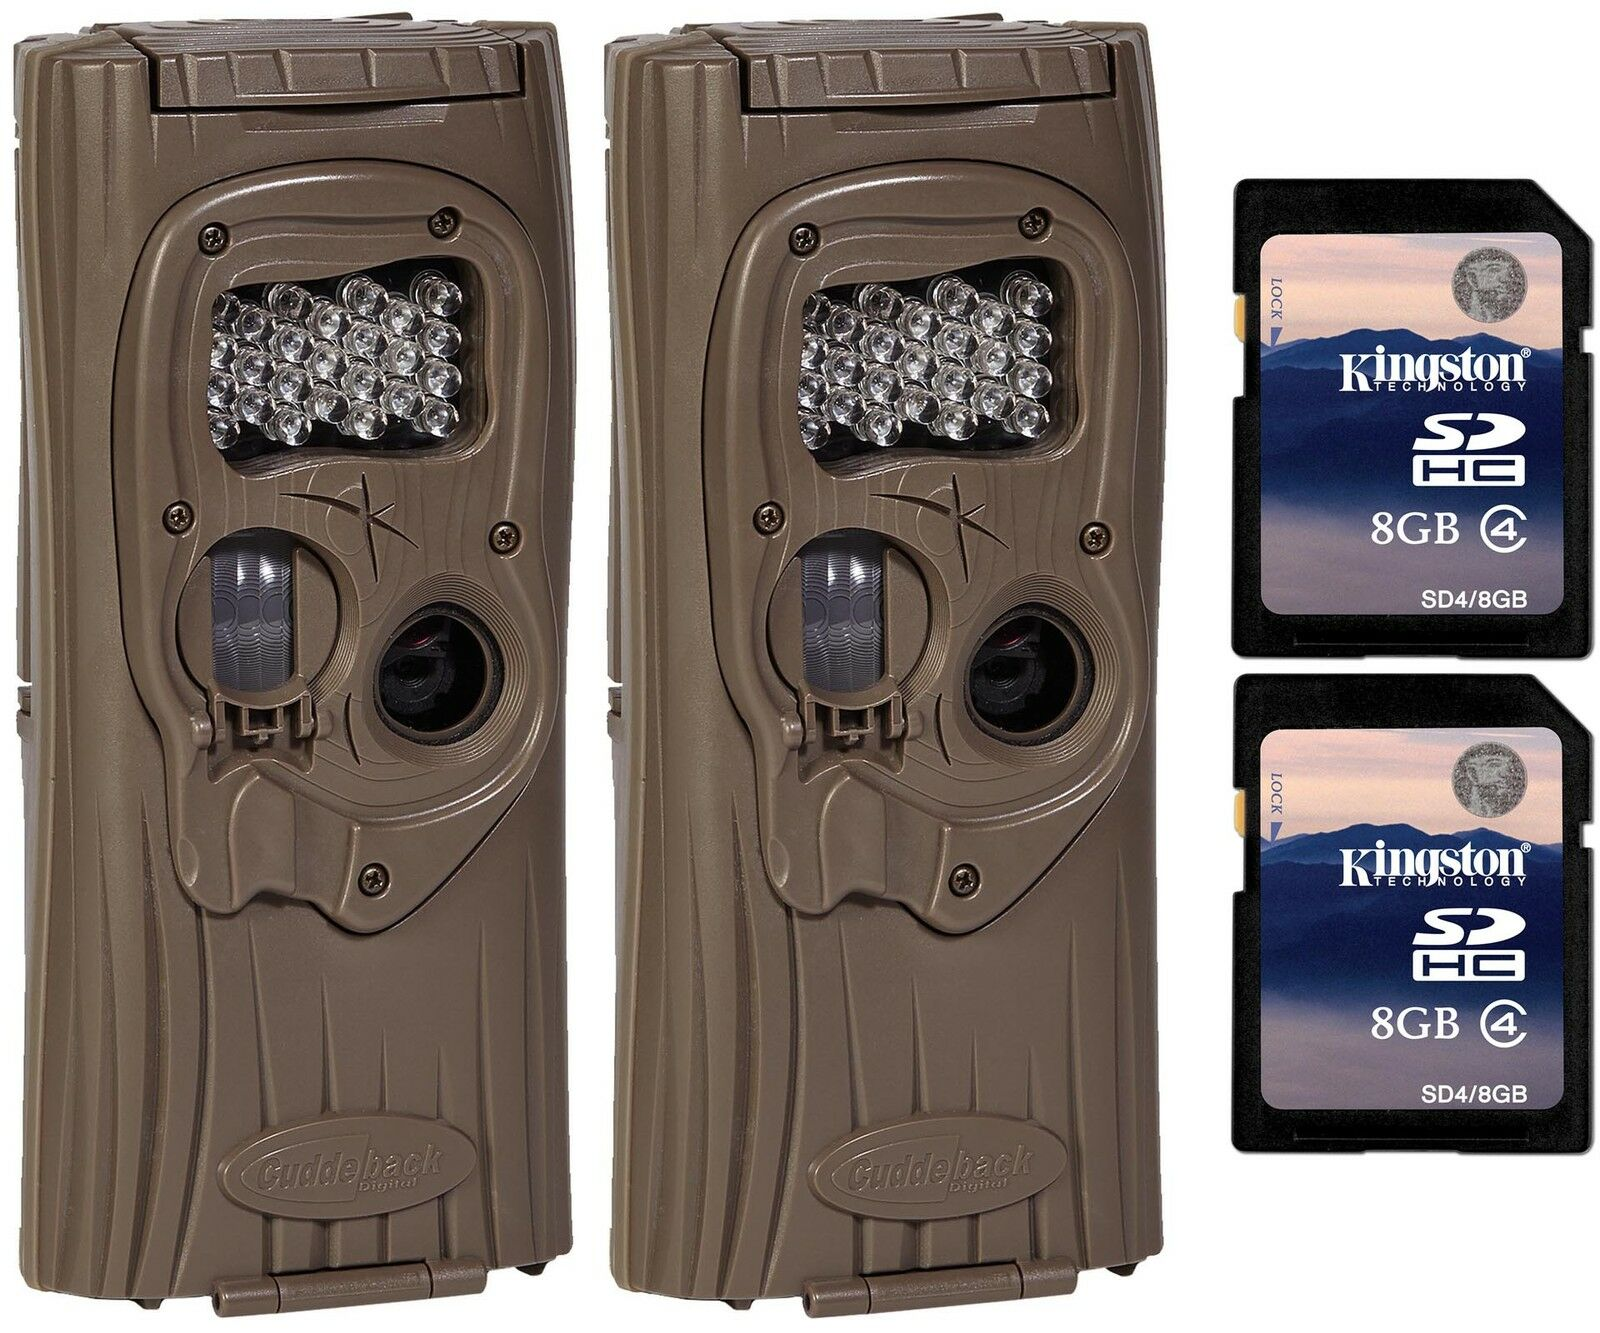 2) Cuddeback F2 IR Plus 1309 Infrared Trail Game Hunting Cameras ...